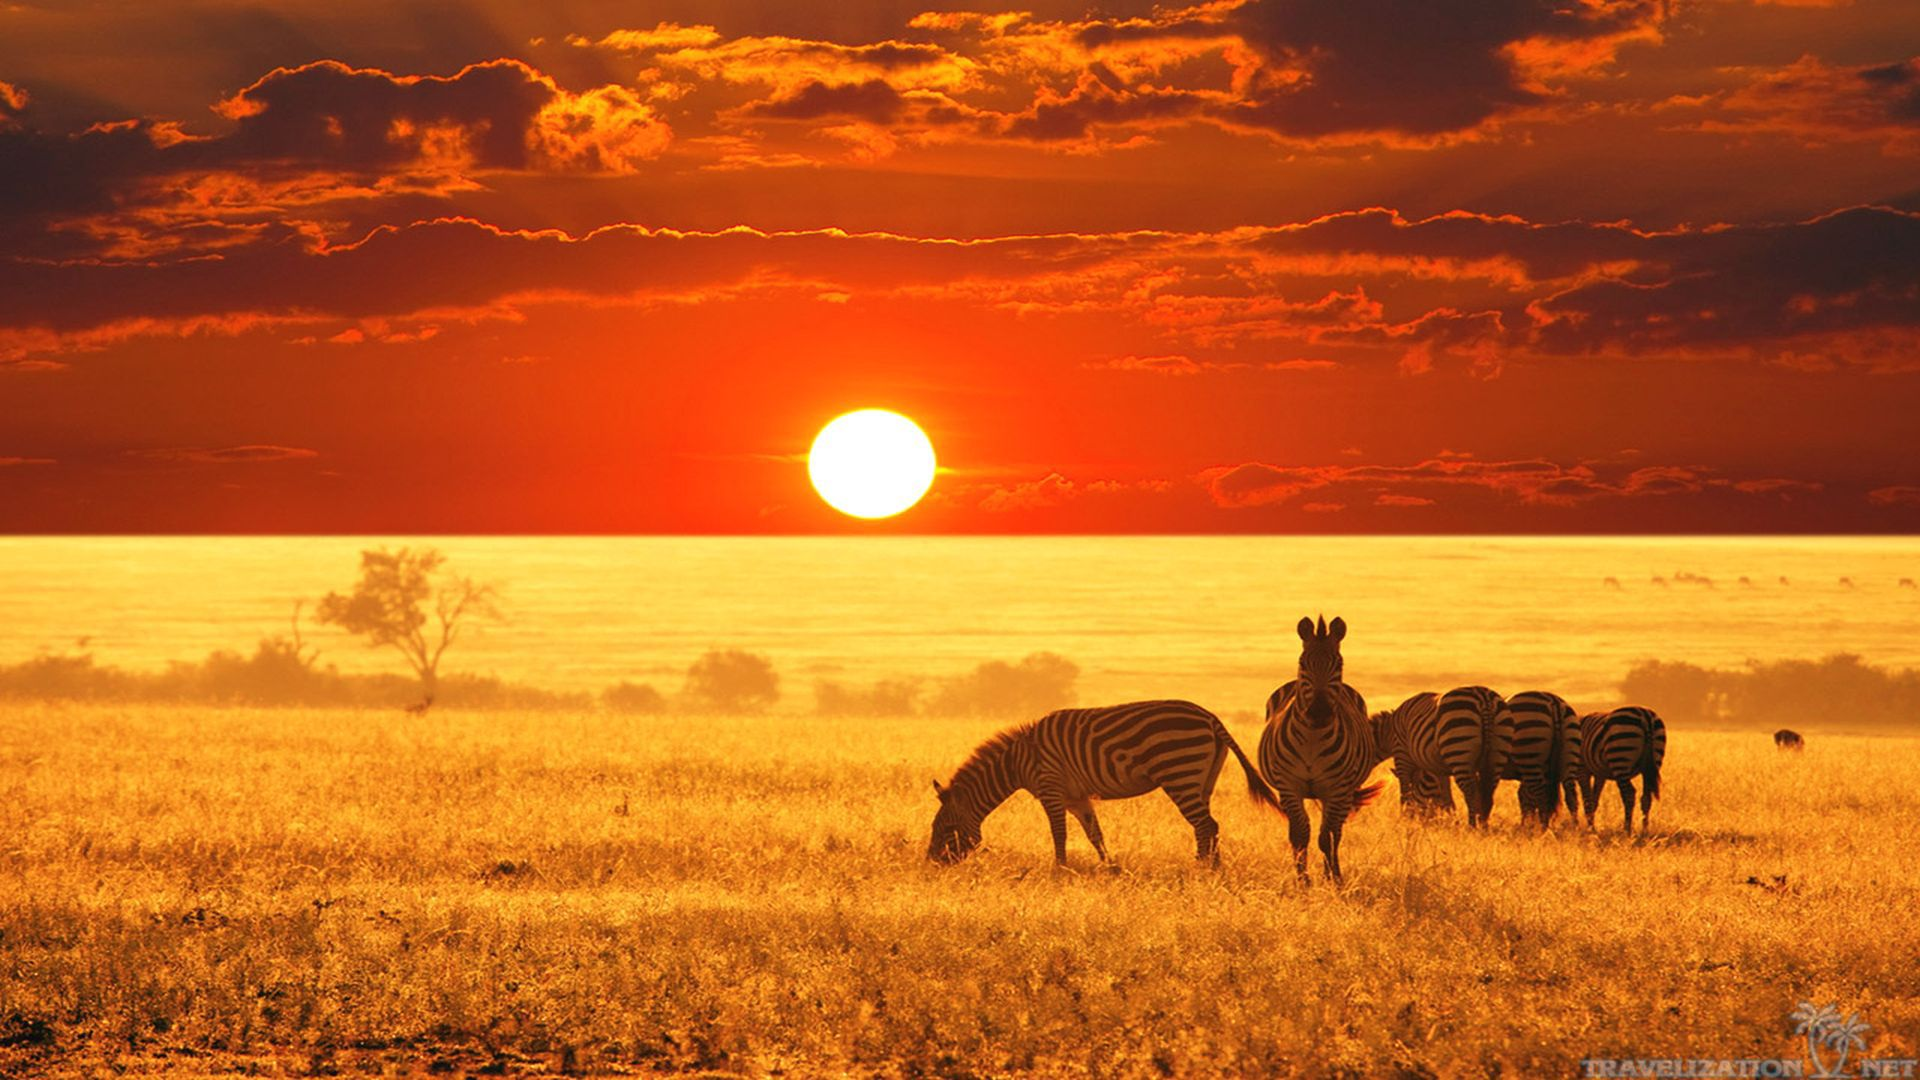 Gorgeous Scenary African Safari Wallpapers 1920x1080